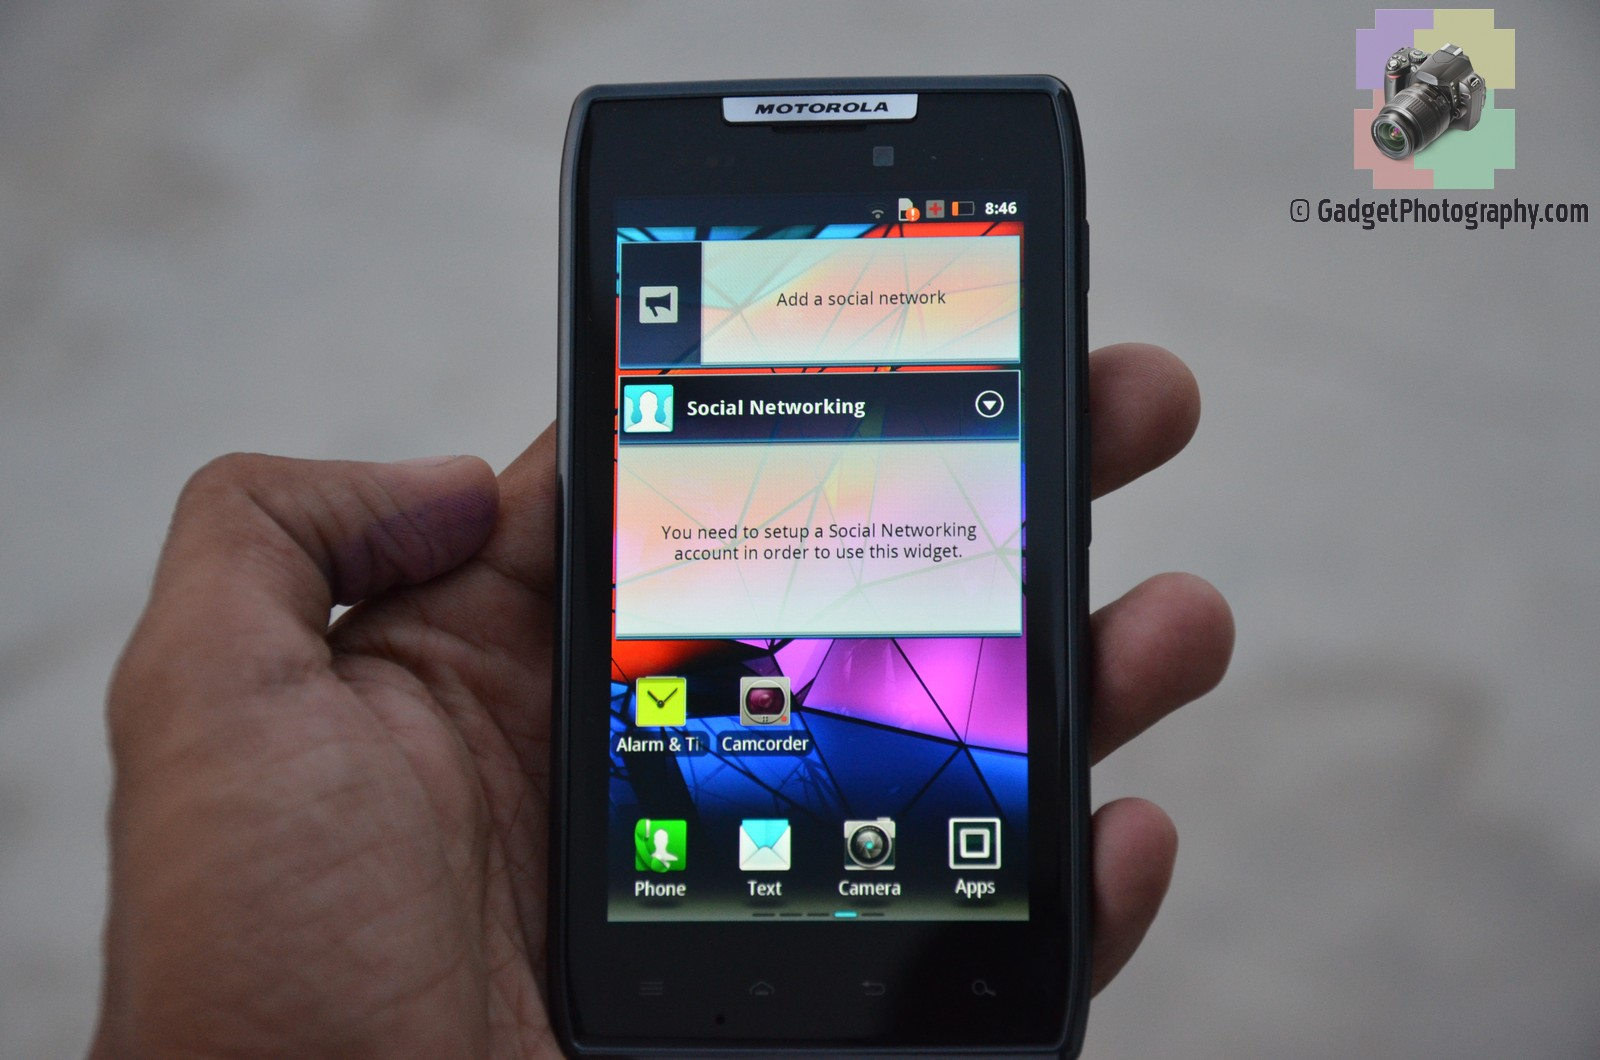 Motorola Droid Razr Home Screen